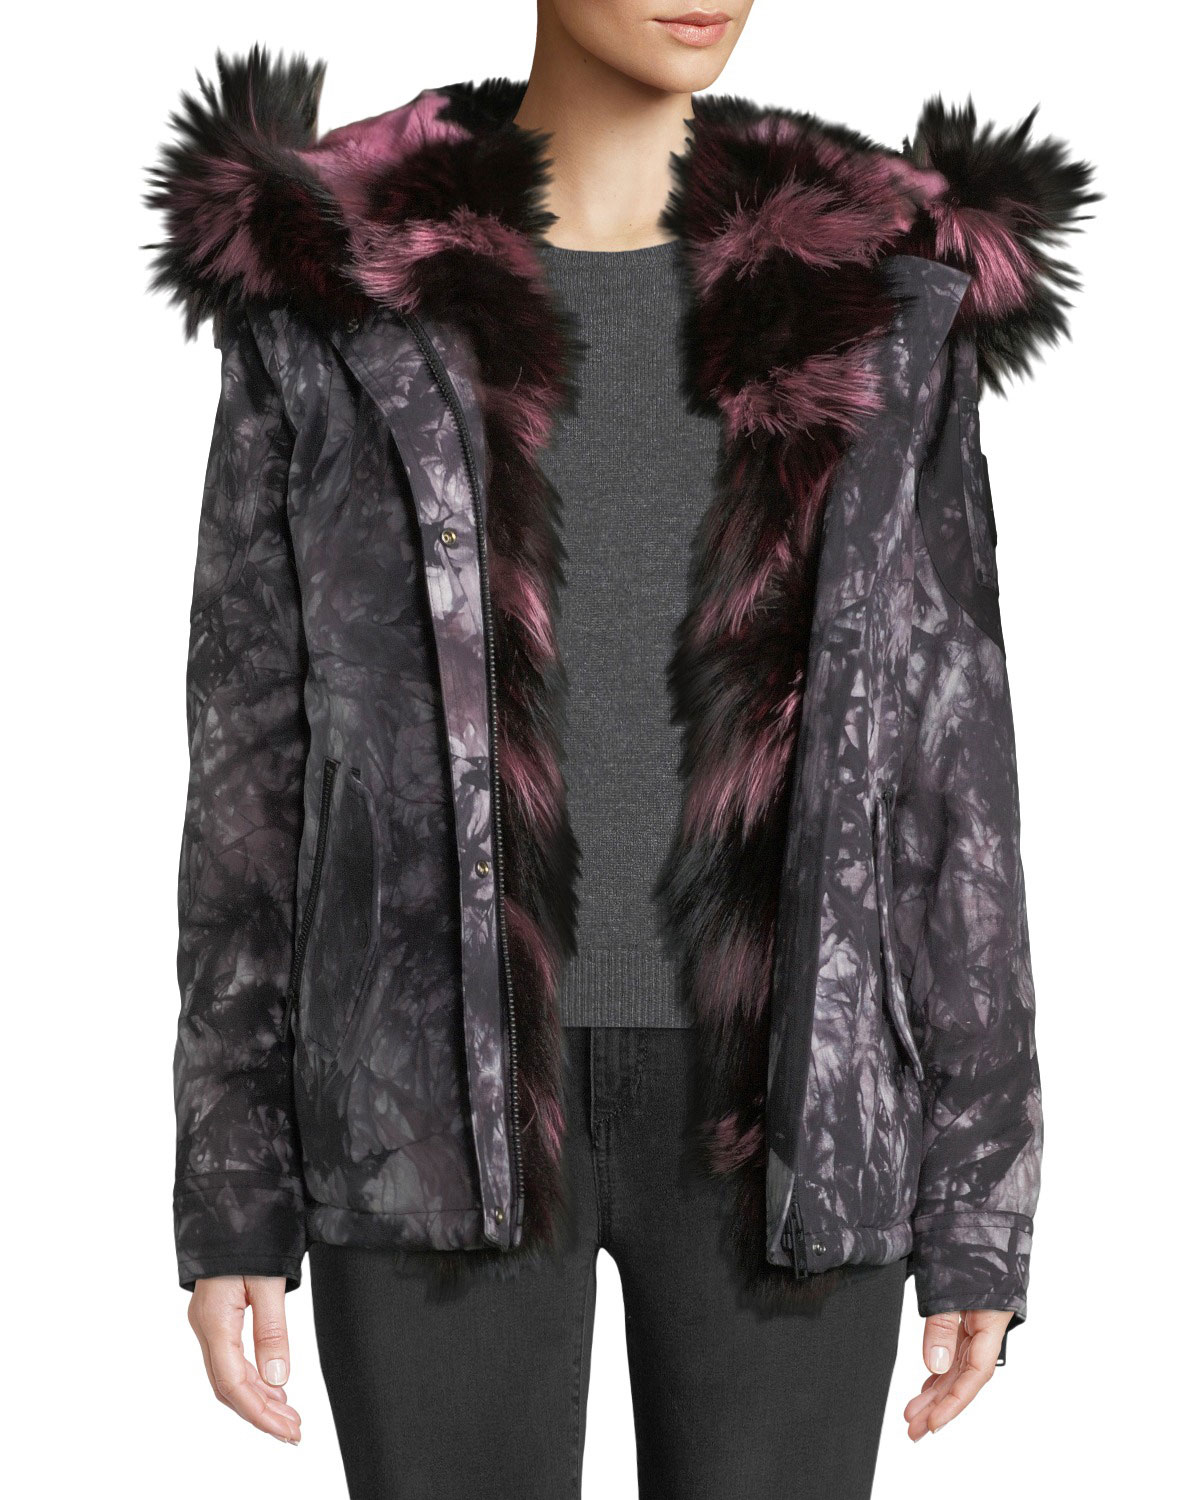 Moose Knuckles RIVIERE DU-LOUP PRINTED JACKET W/ HOOD & FUR TRIM